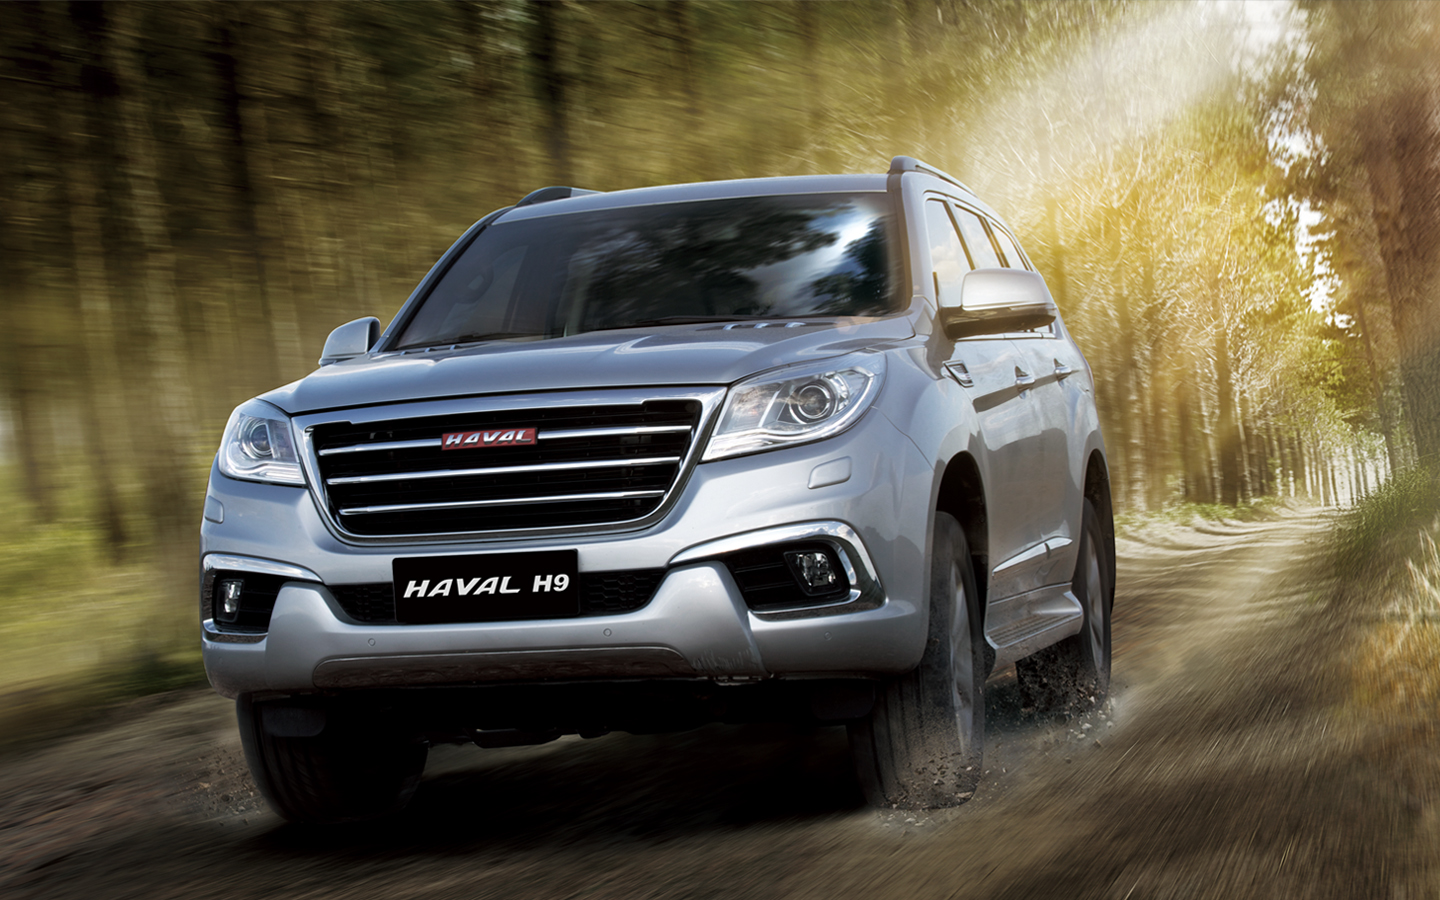 4X4 News: Haval Comes to Australia, with 4X4 Haval H9